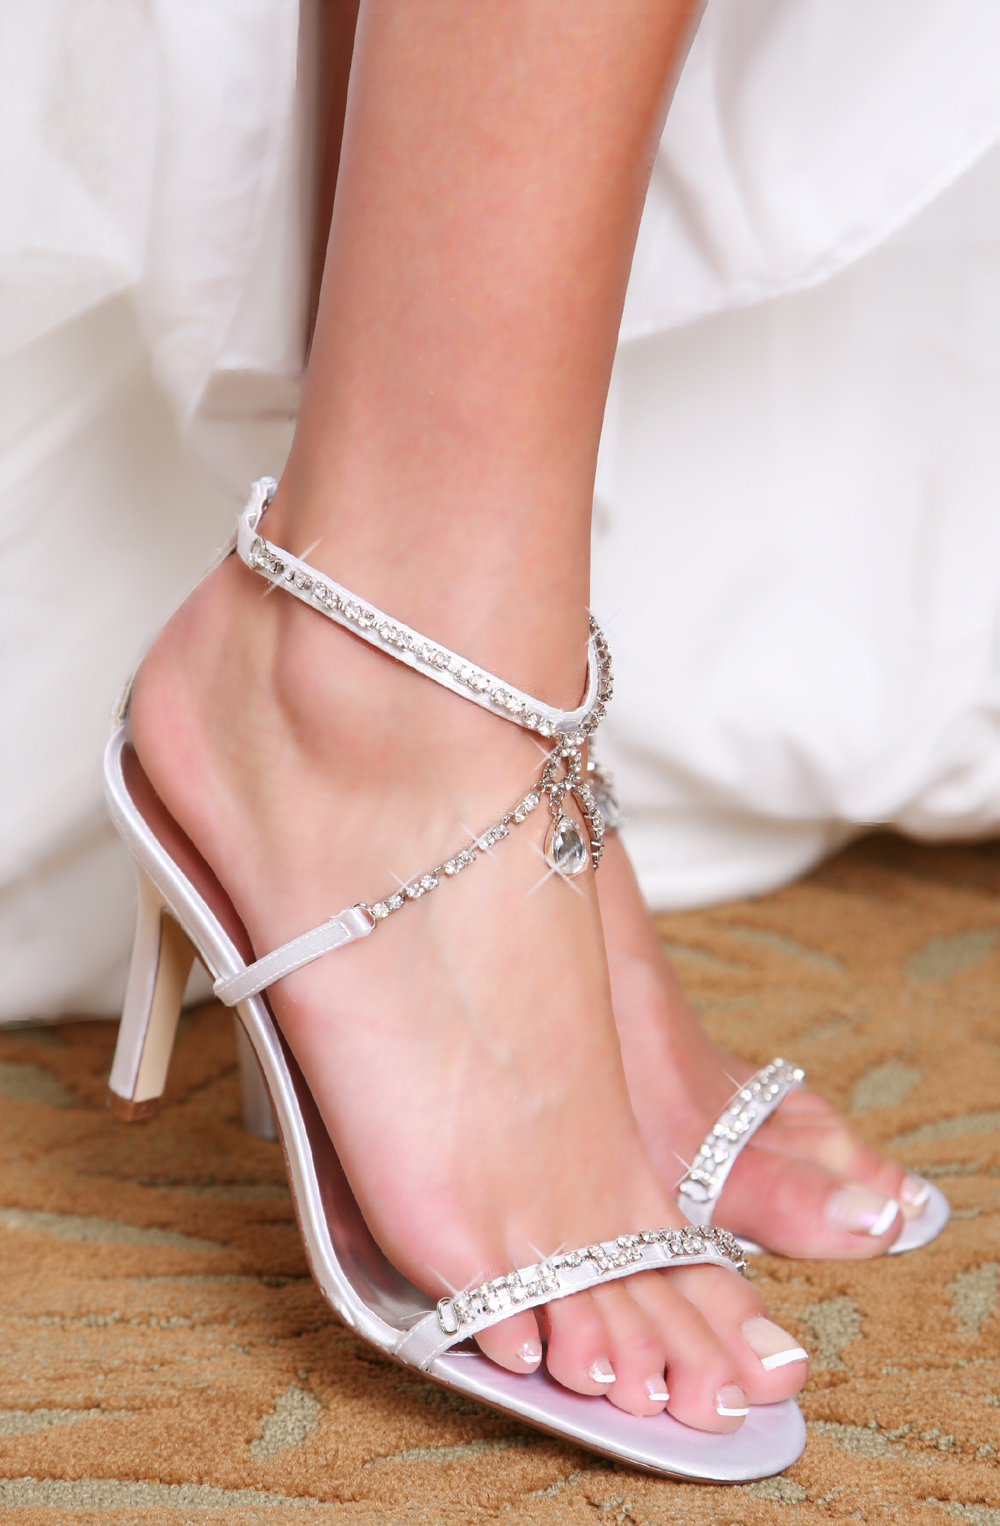 FOOD OF LIFE: IDEAL WEDDING SHOES